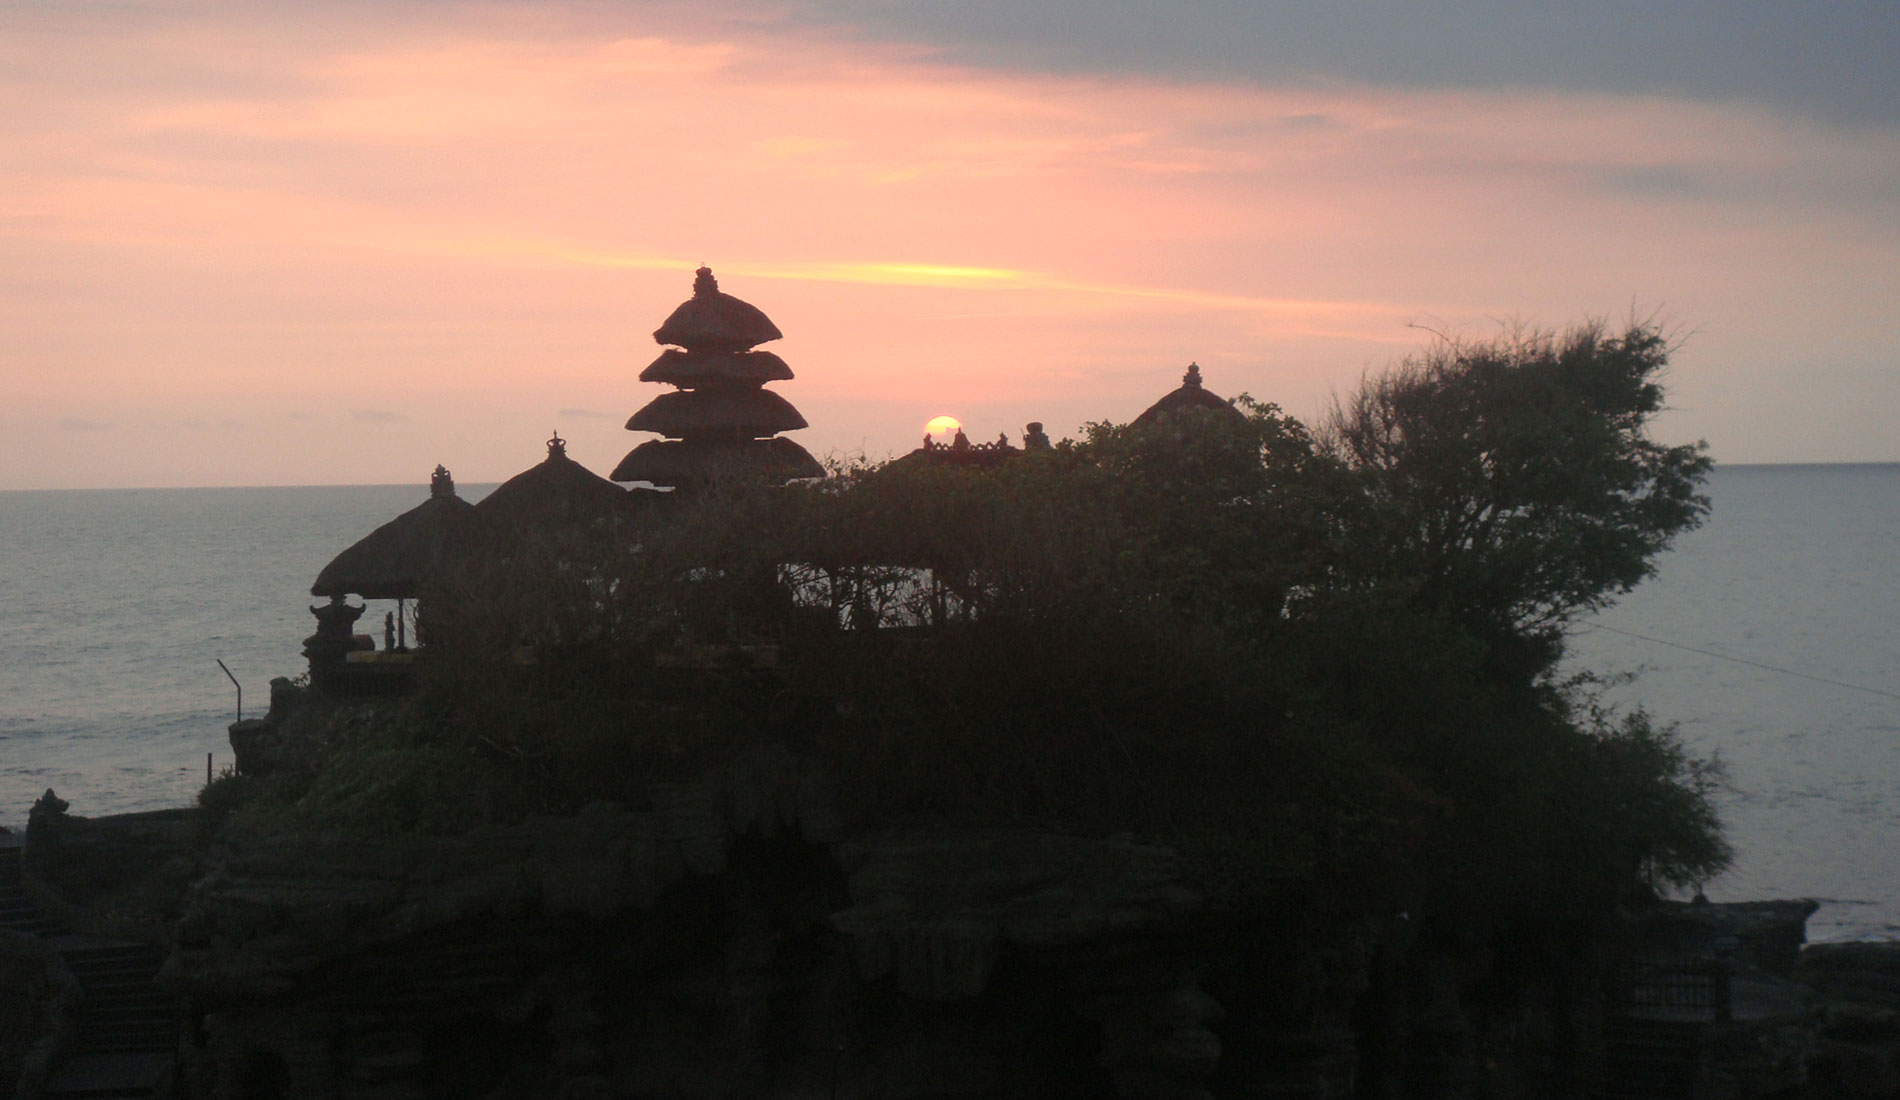 TanahLotSUnset - Things To Do in Bali Tours Activities